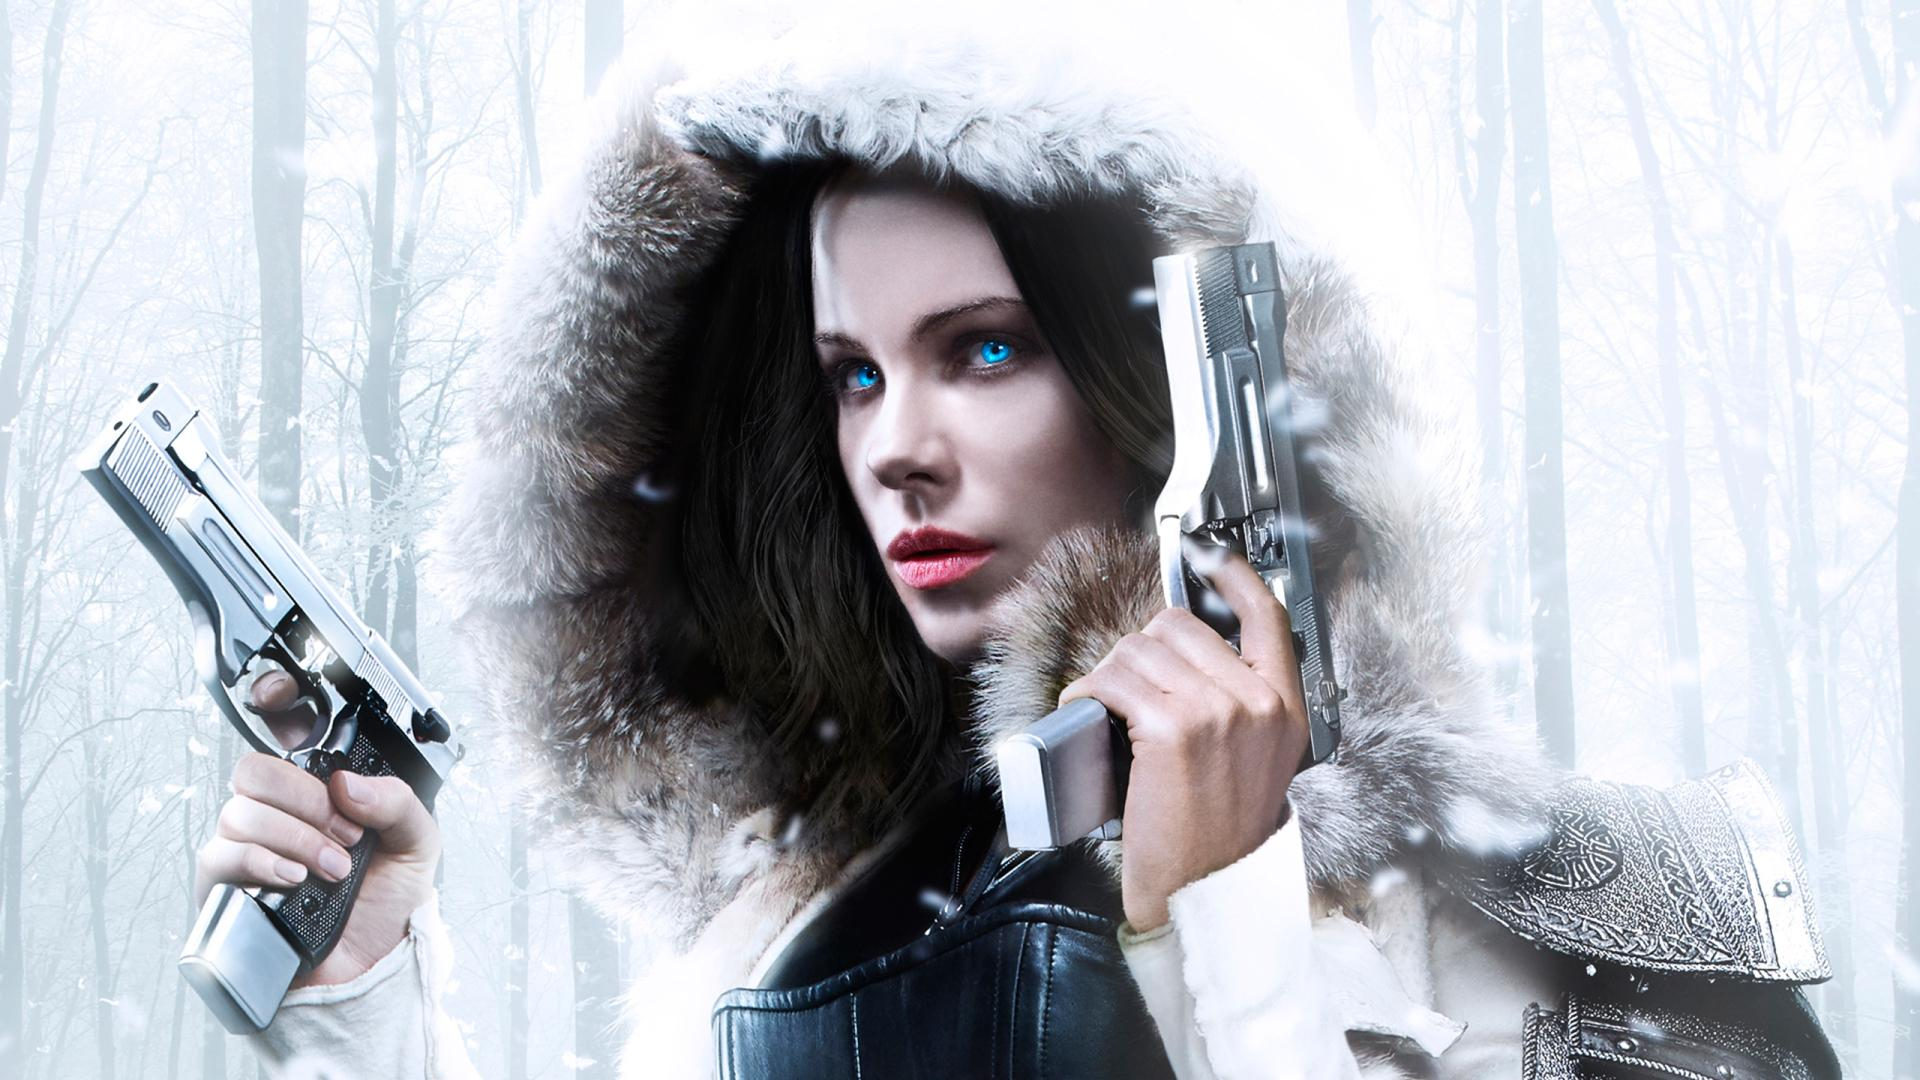 Underworld Blood Wars wallpapers HD quality